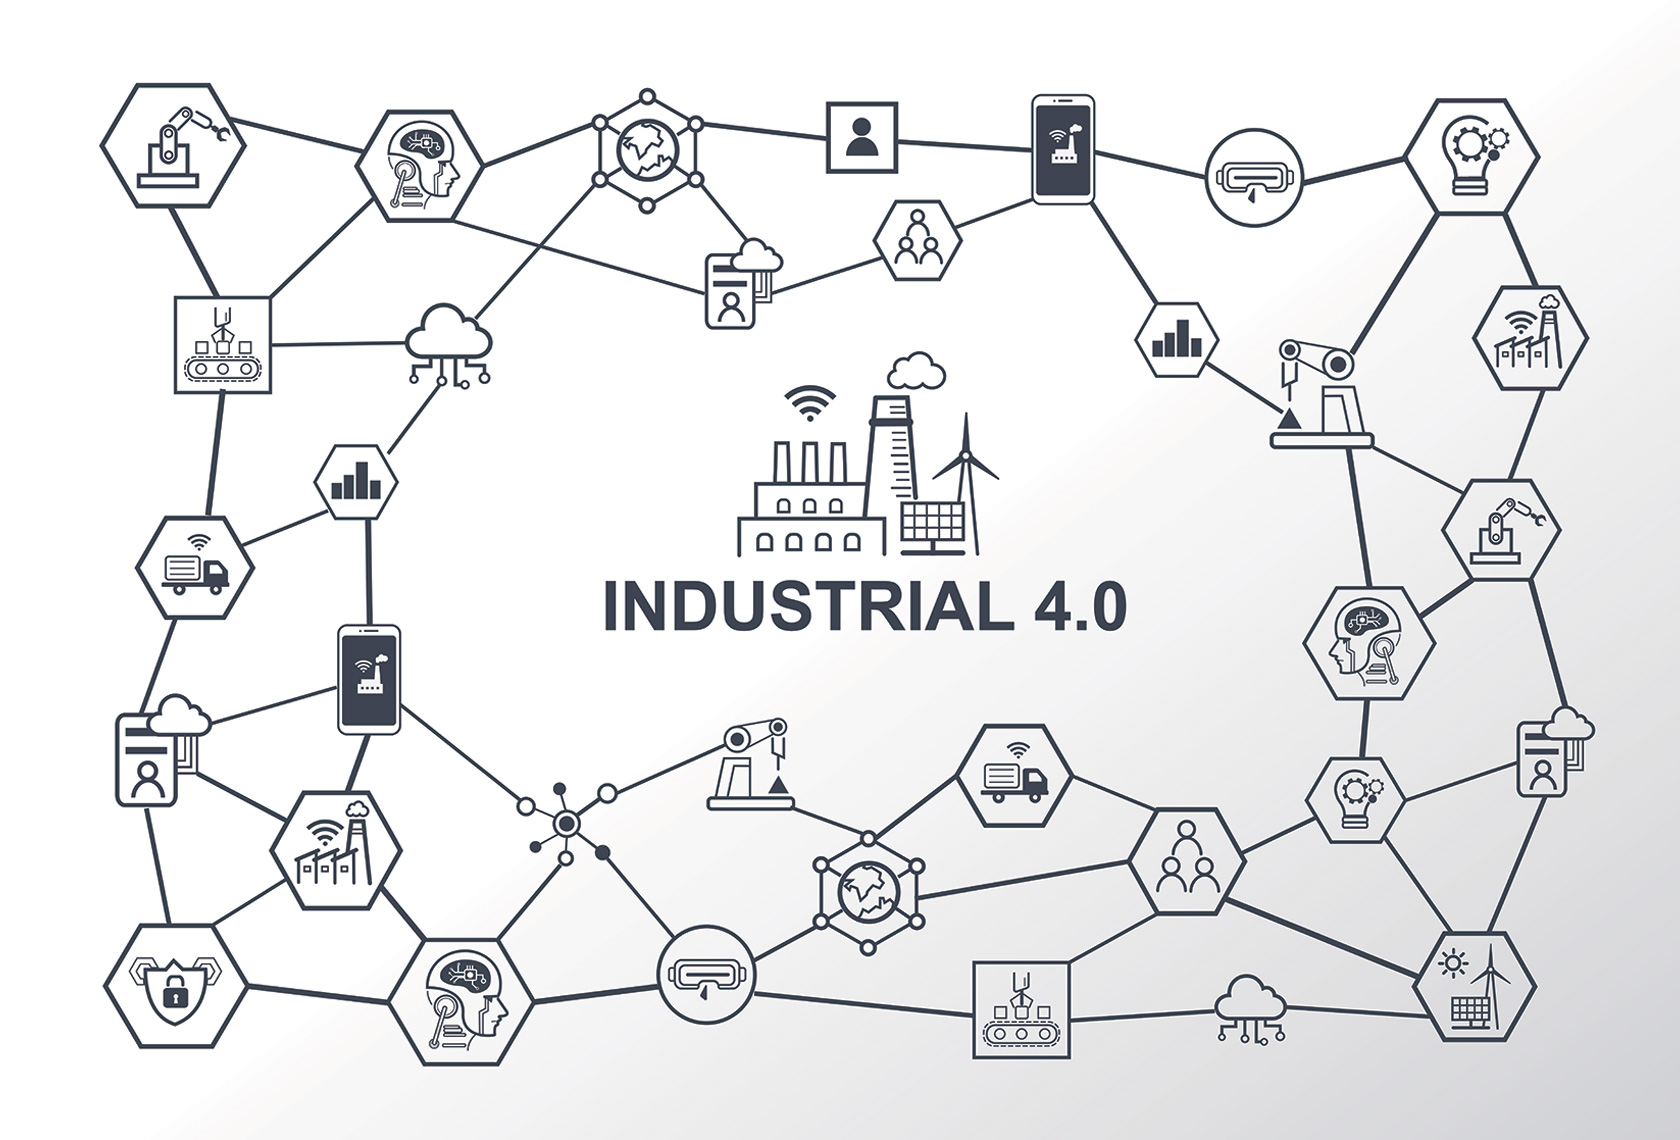 Industry 4.0 and purchase decisions illustration